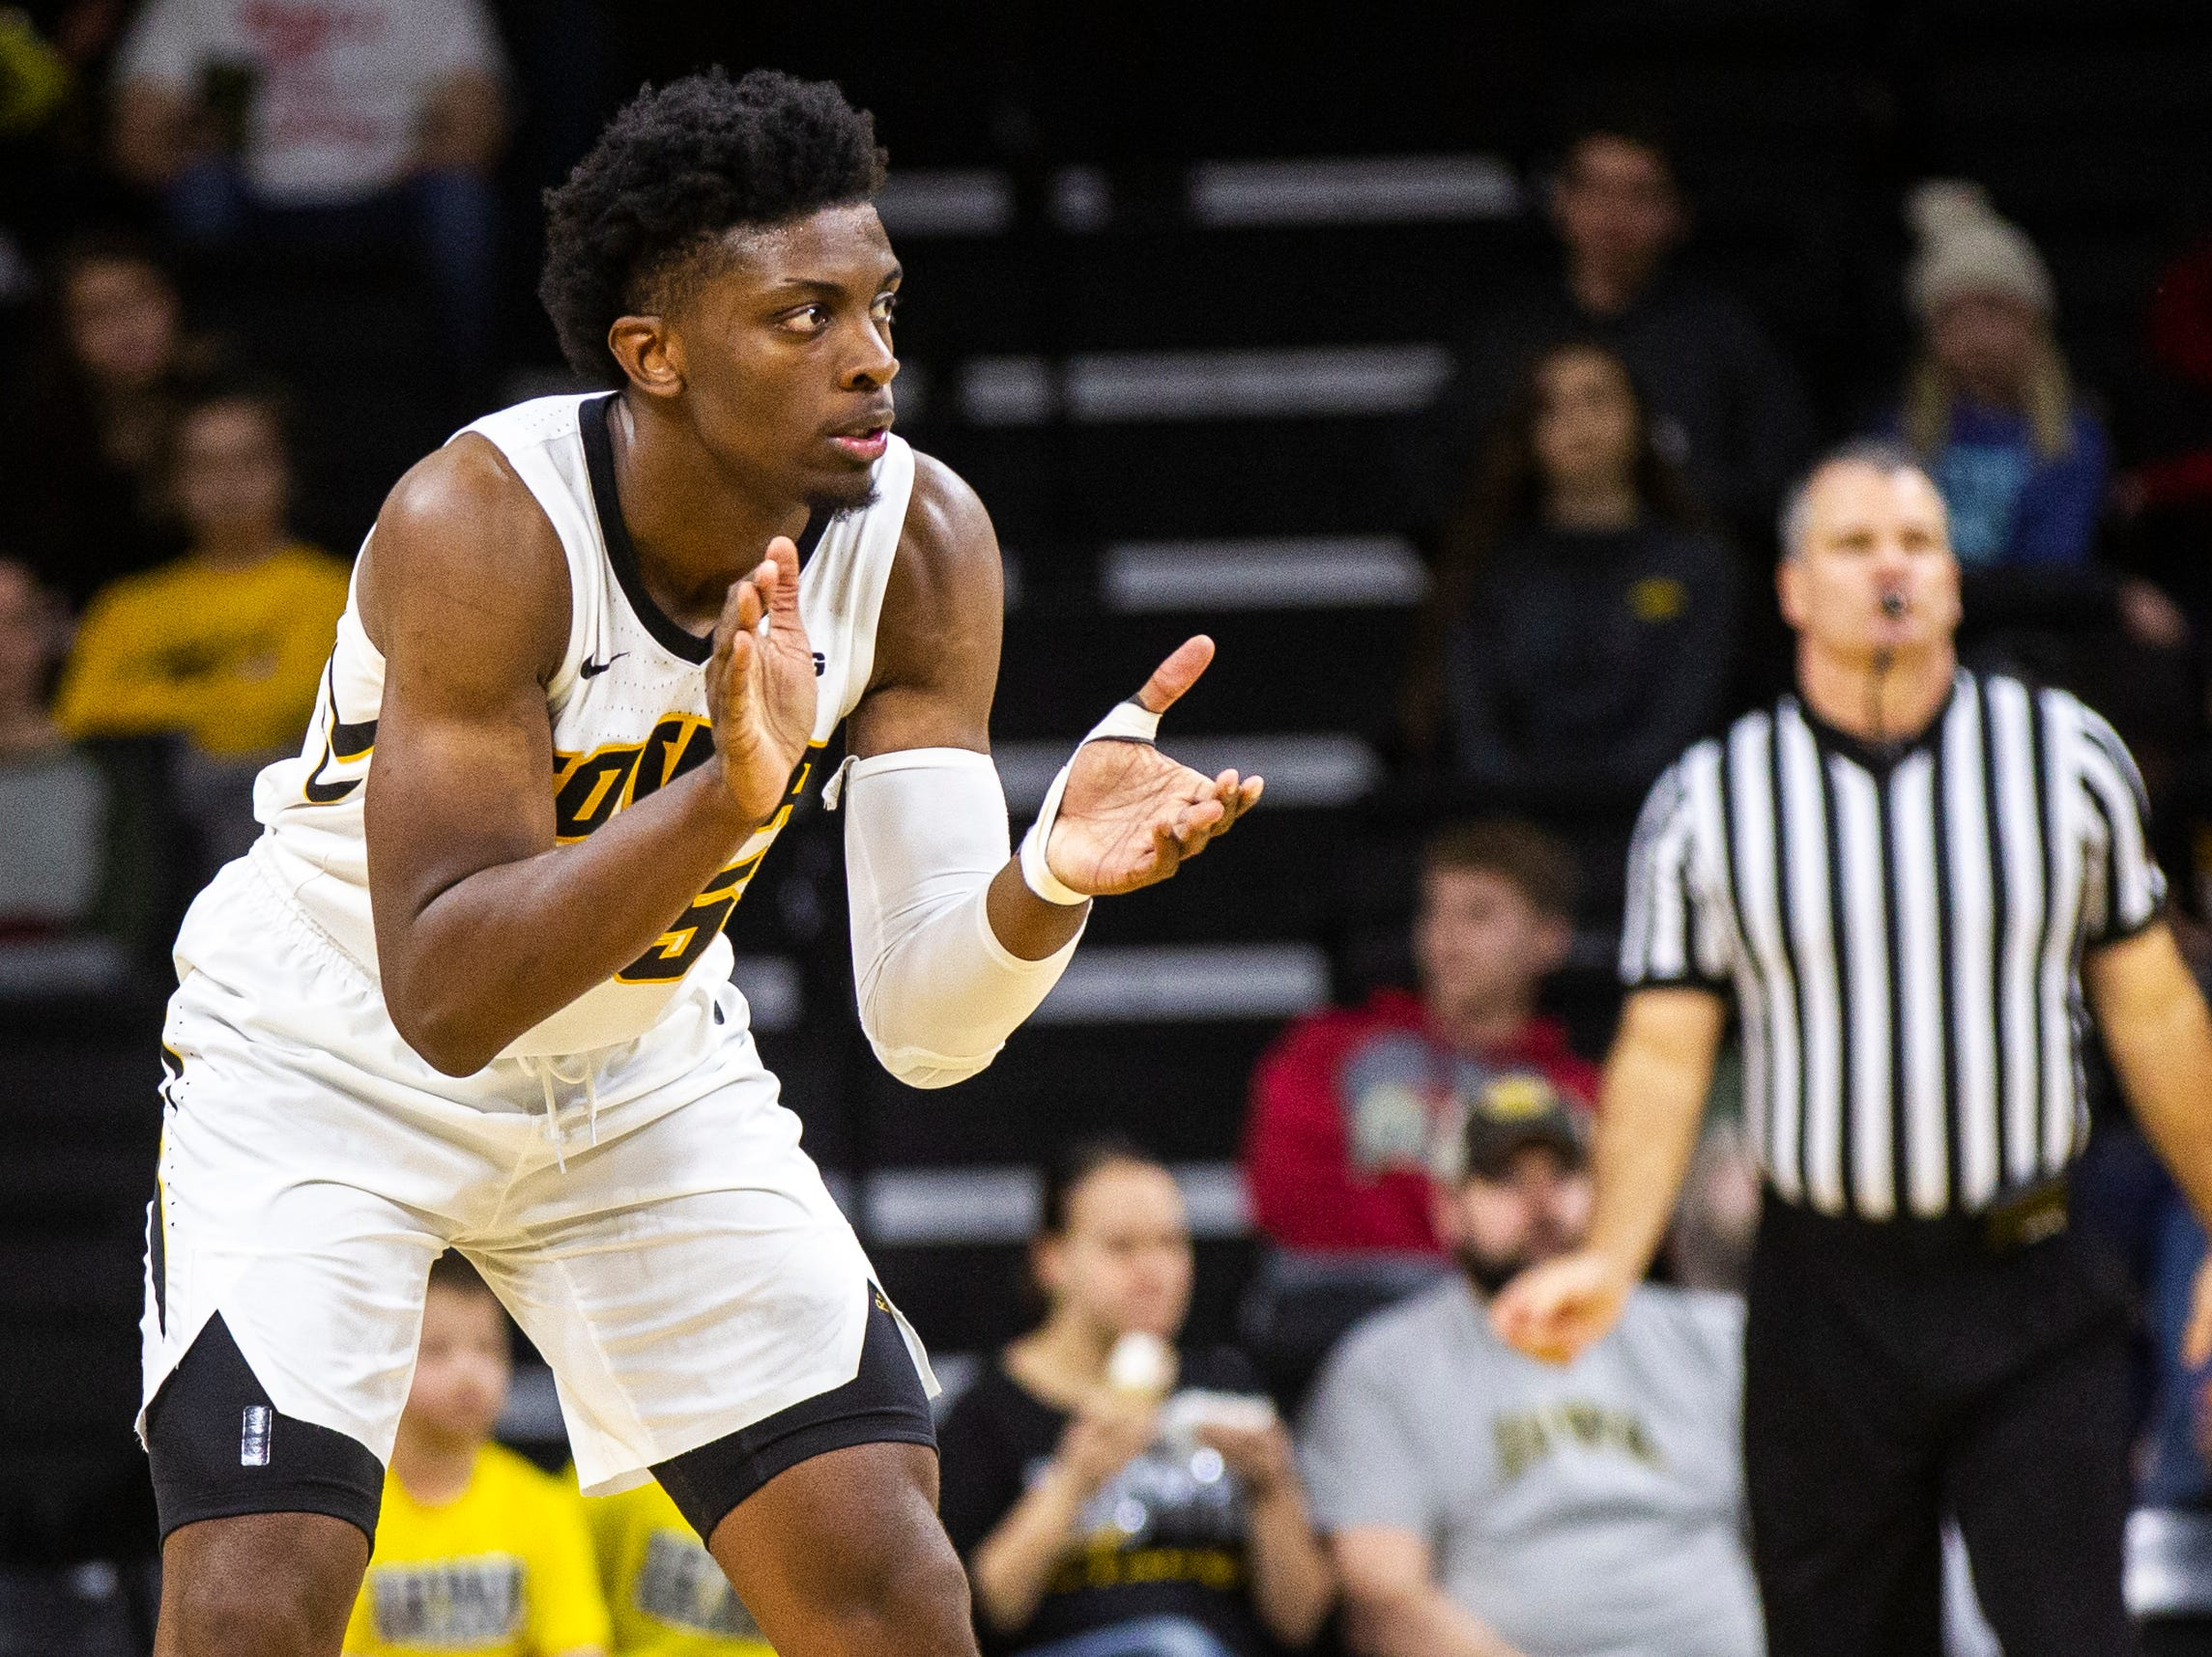 Iowa forward Tyler Cook (25) claps while back on defense during a NCAA men's basketball game on Saturday, Dec. 29, 2018, at Carver-Hawkeye Arena in Iowa City.